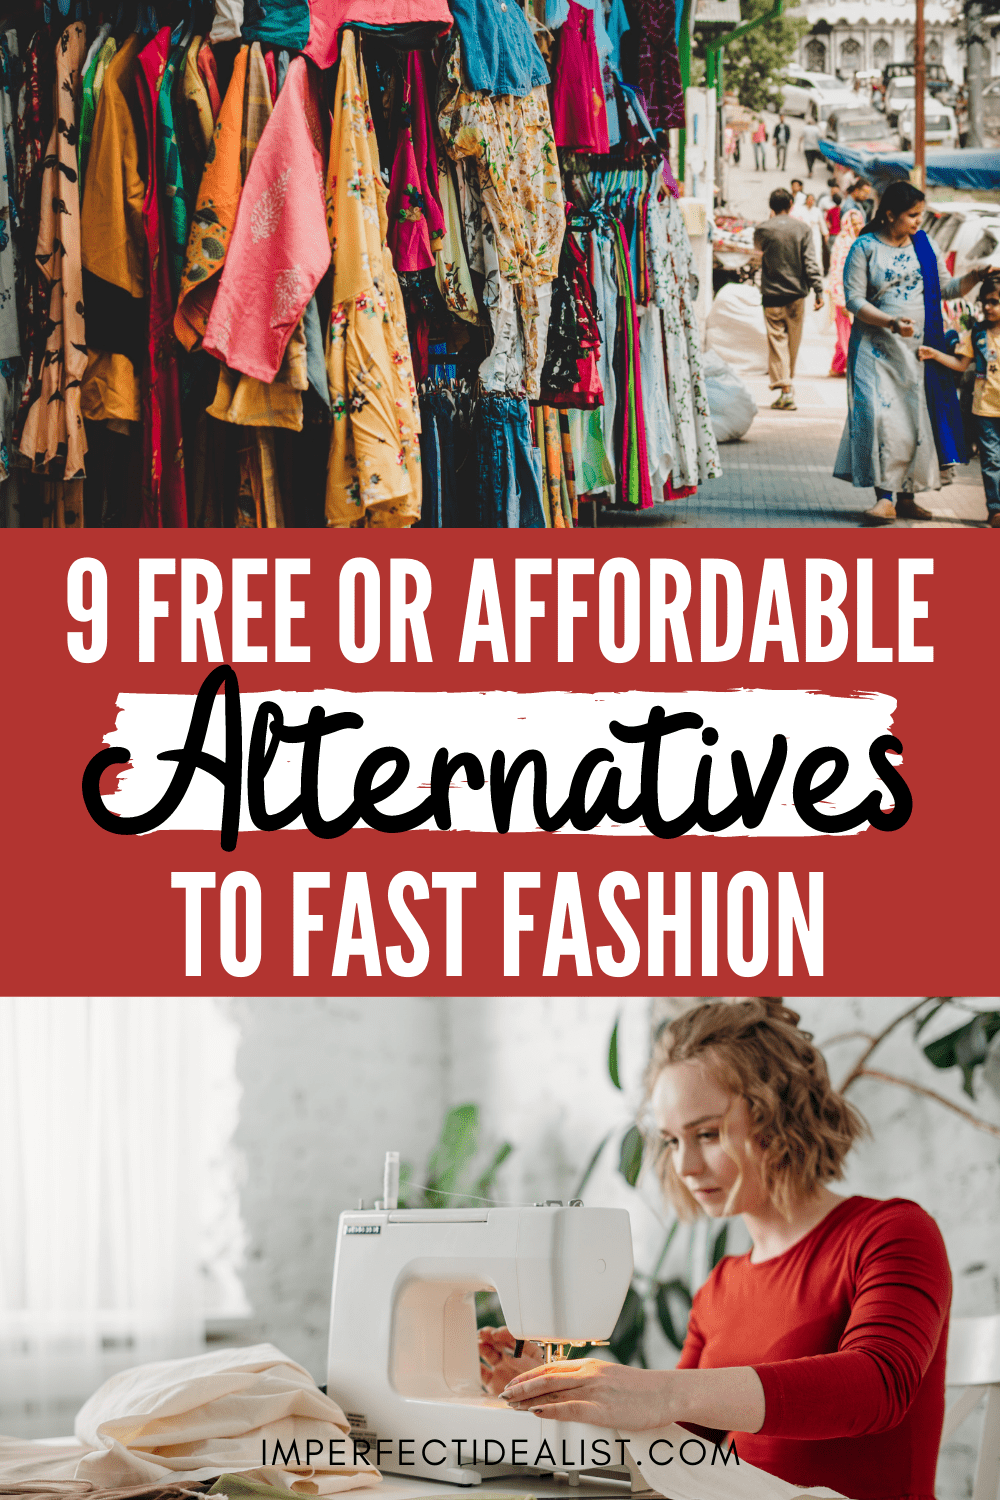 Pinterest pin that reads '9 Free or Affordable Alternatives to Fast Fashion' with an image of a flea market on top and person sewing on the bottom